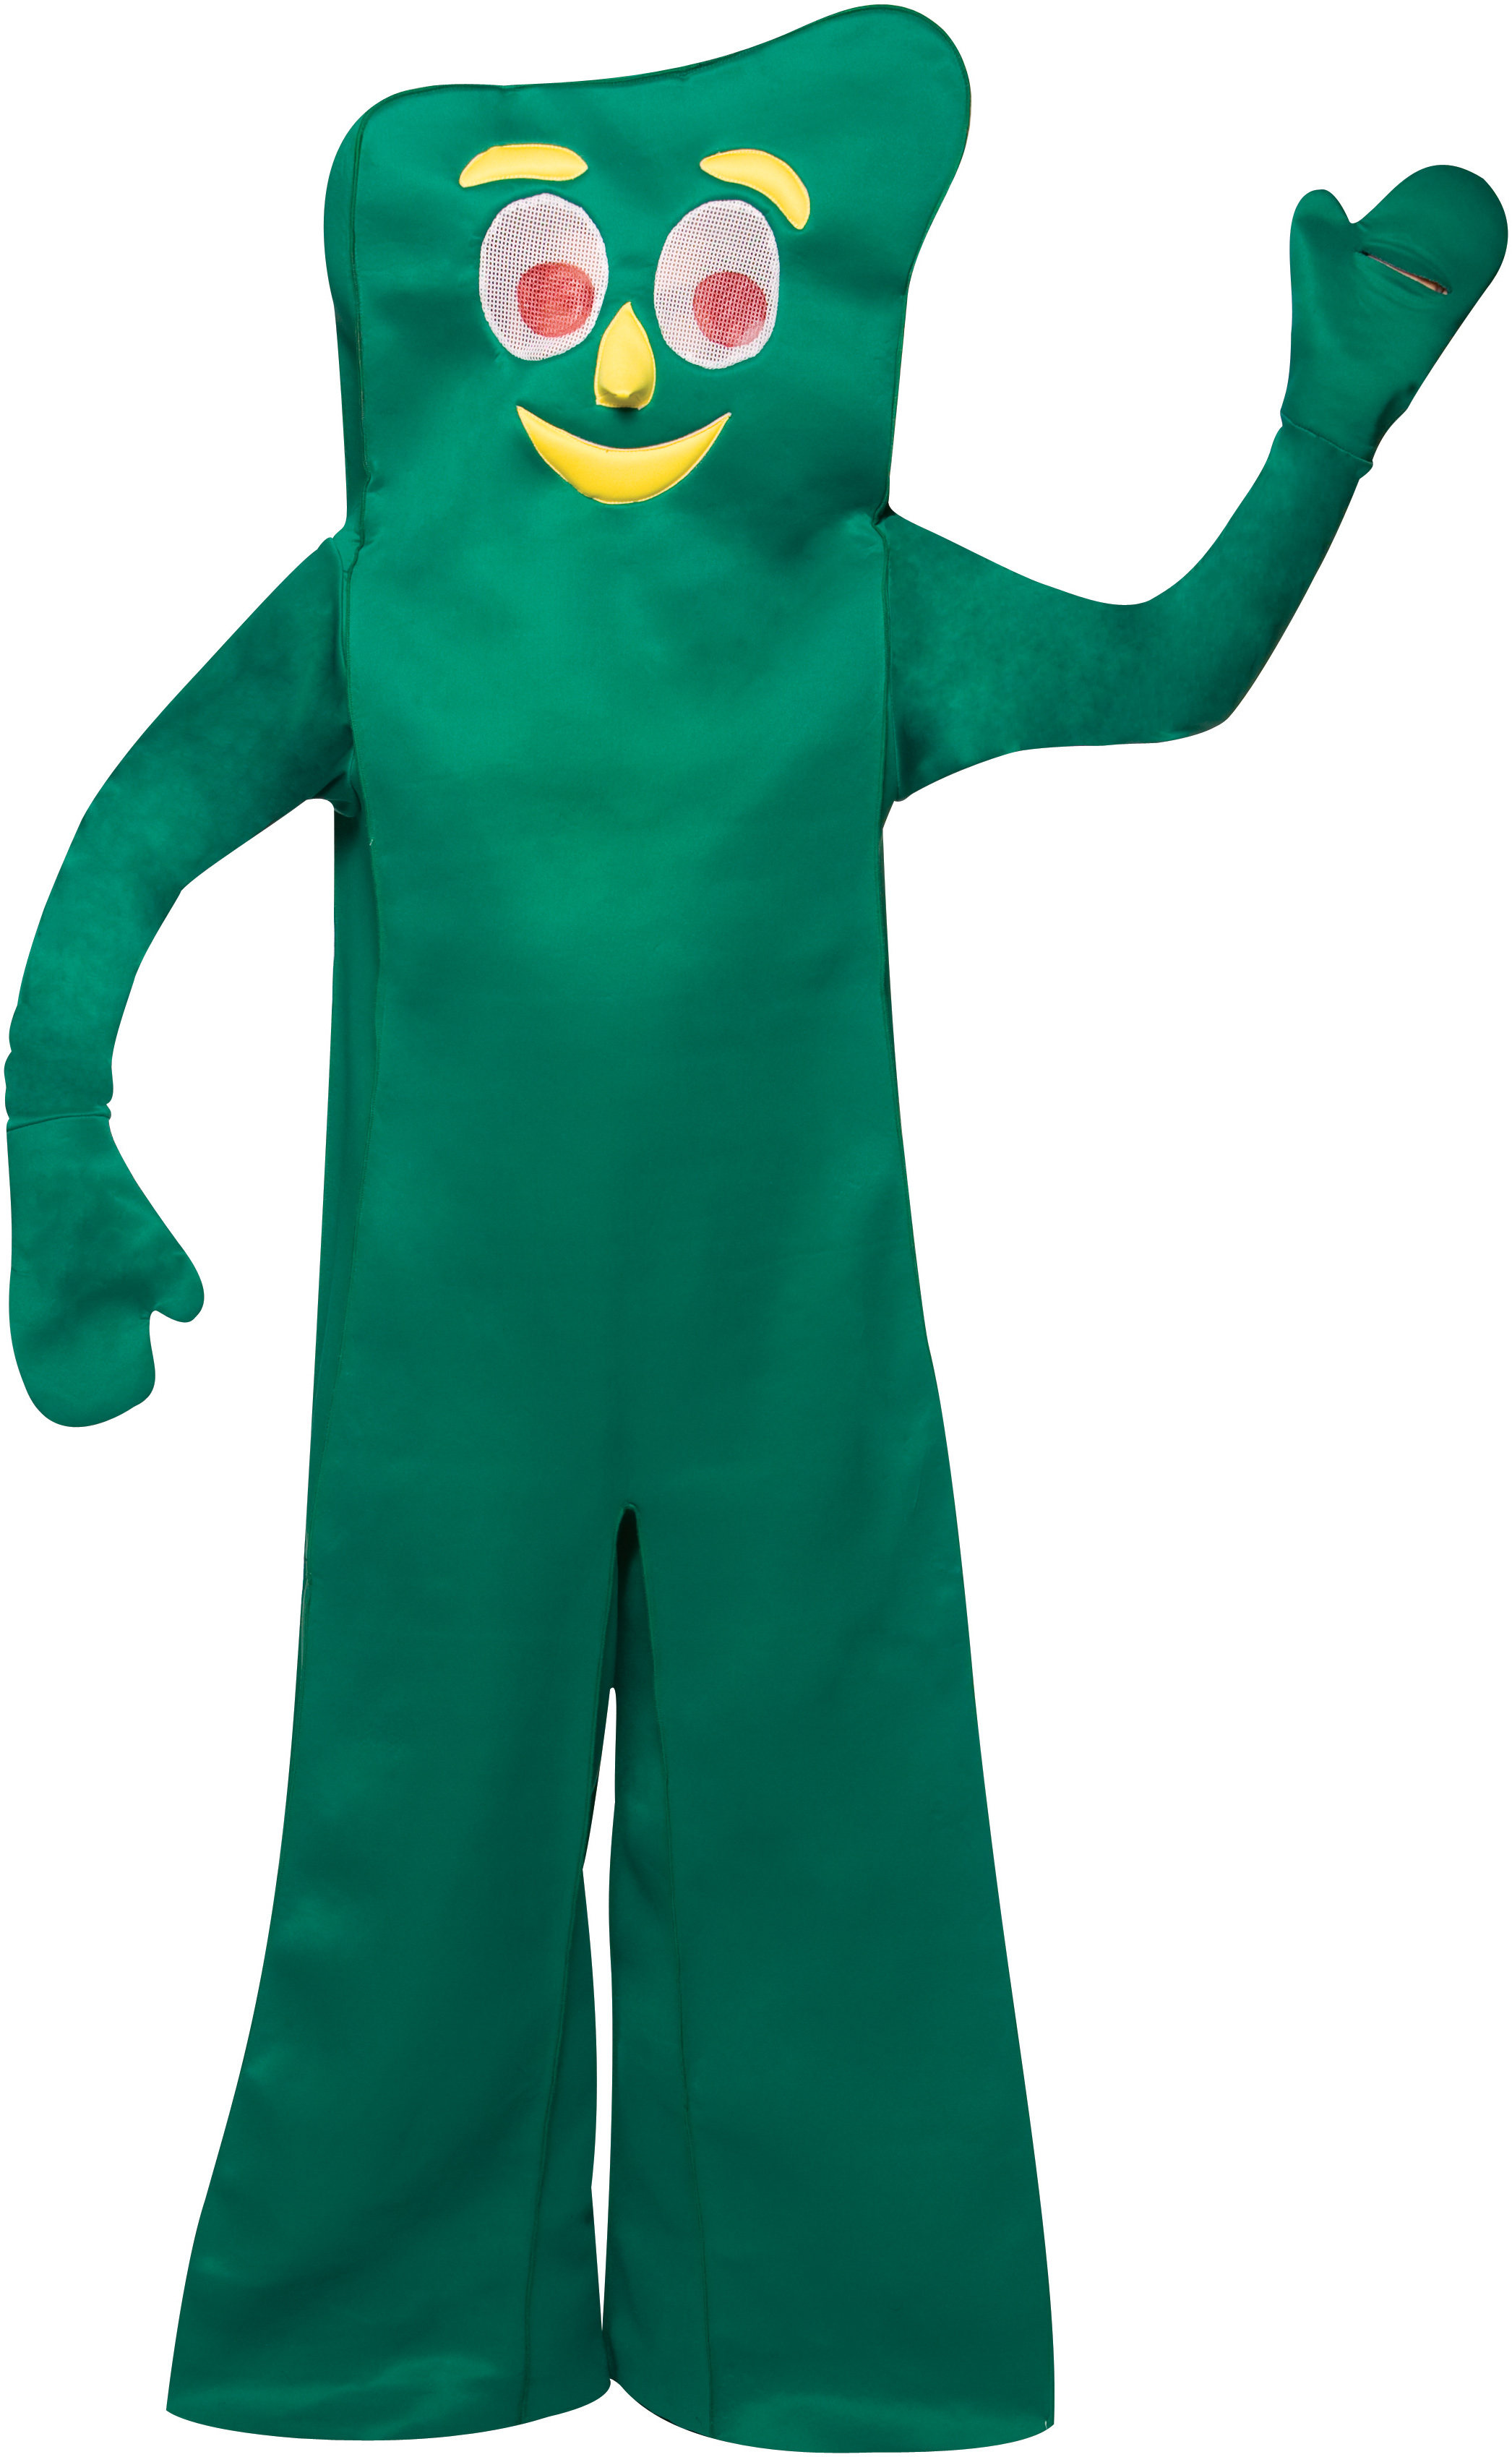 Gumby And Pokey Costume Gumby Adult Costume